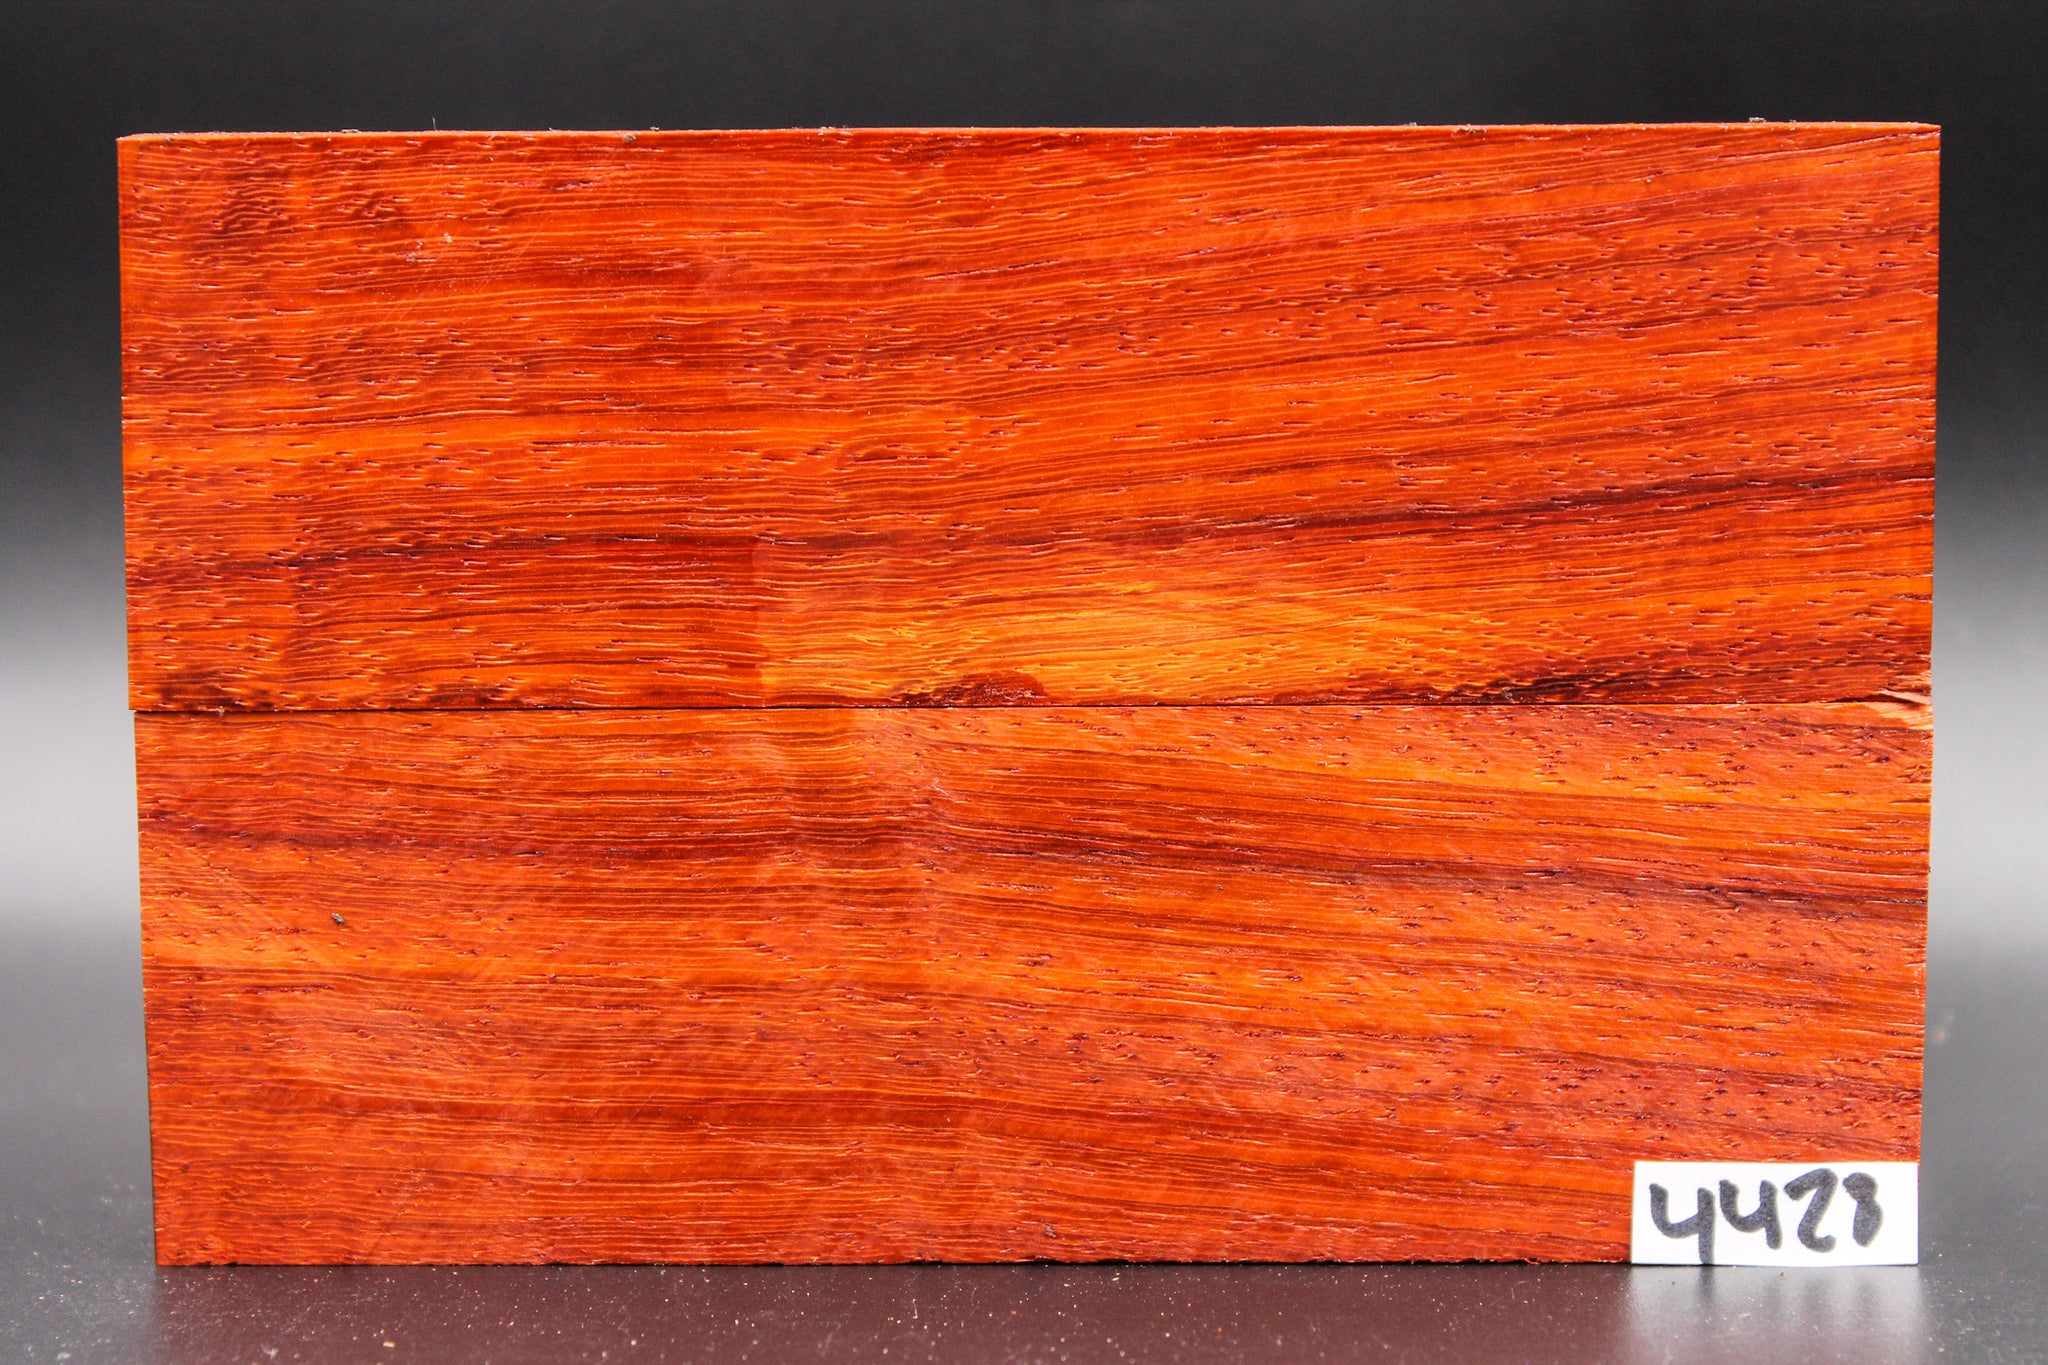 Rare Exotic Padauk Wood Knife Scales, Wood Blank Handle, Pistol Grips 4428 - Exotic Knife Scales | Rundle Woodworks